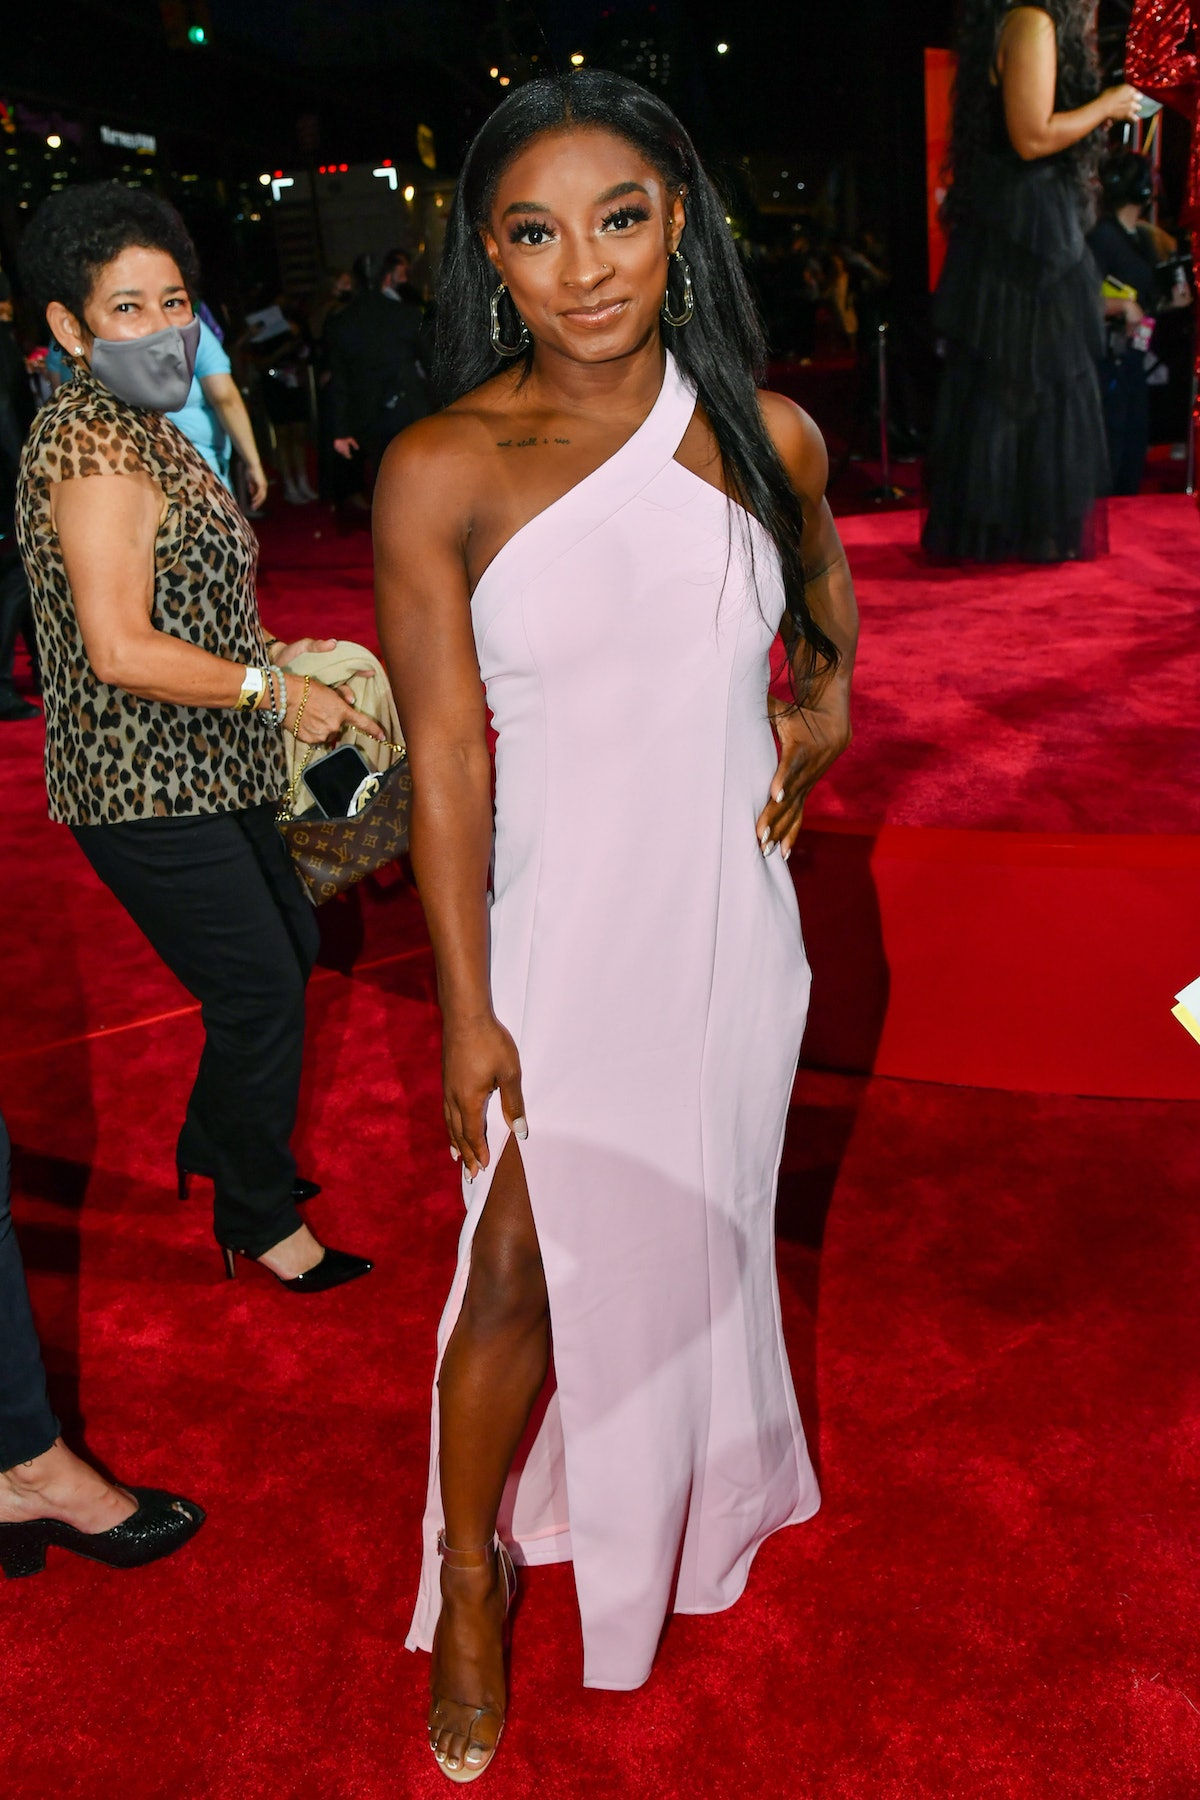 Simone Biles attends the 2021 MTV Video Music Awards at Barclays Center on September 12, 2021 in the...